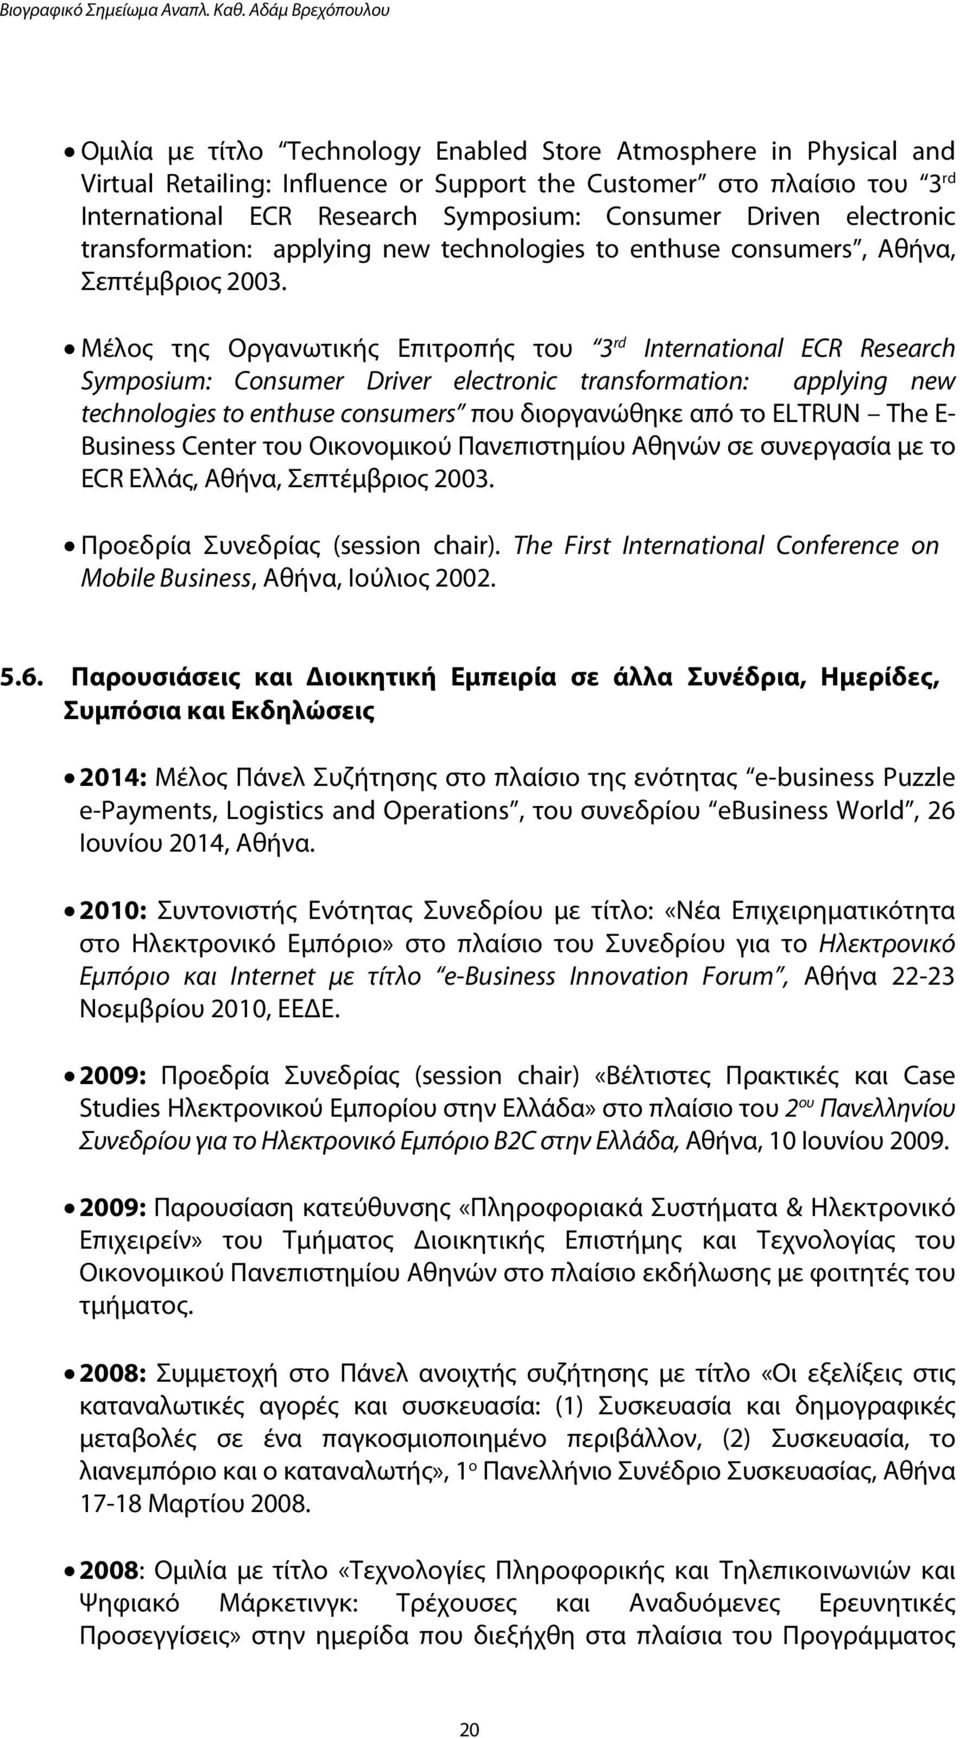 Μέλος της Οργανωτικής Επιτροπής του 3 rd International ECR Research Symposium: Consumer Driver electronic transformation: applying new technologies to enthuse consumers που διοργανώθηκε από το ELTRUN